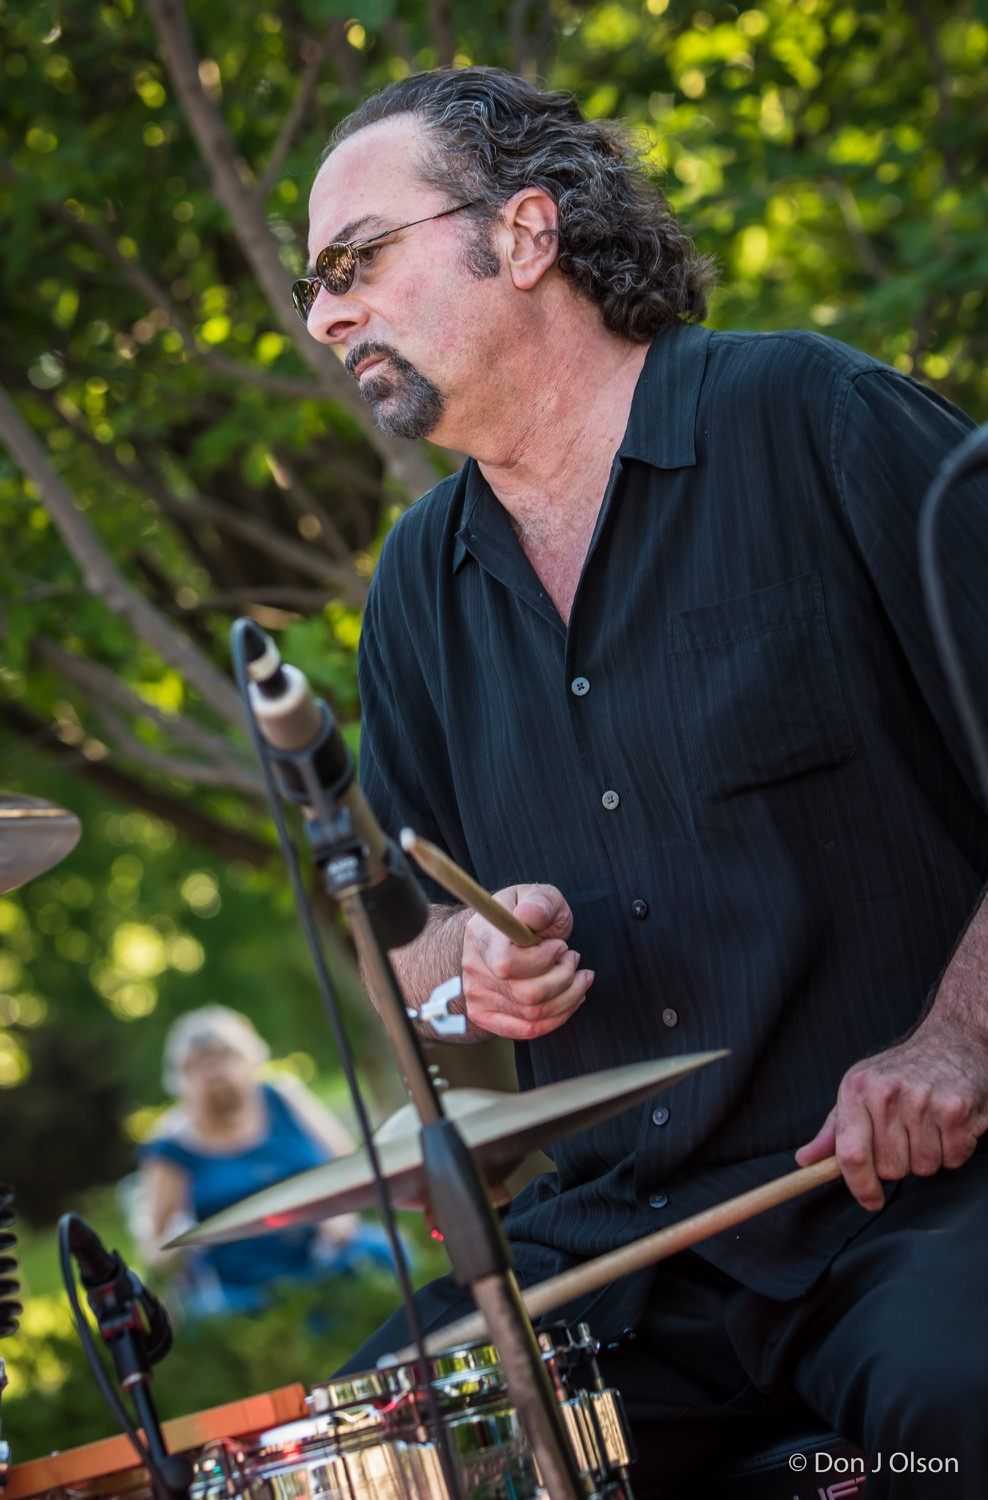 Bobby 'Z' Rivkin / The Veterans' Memorial Wolfe Park Amphitheater / St. Louis Park, Minnesota / August 1st, 2015